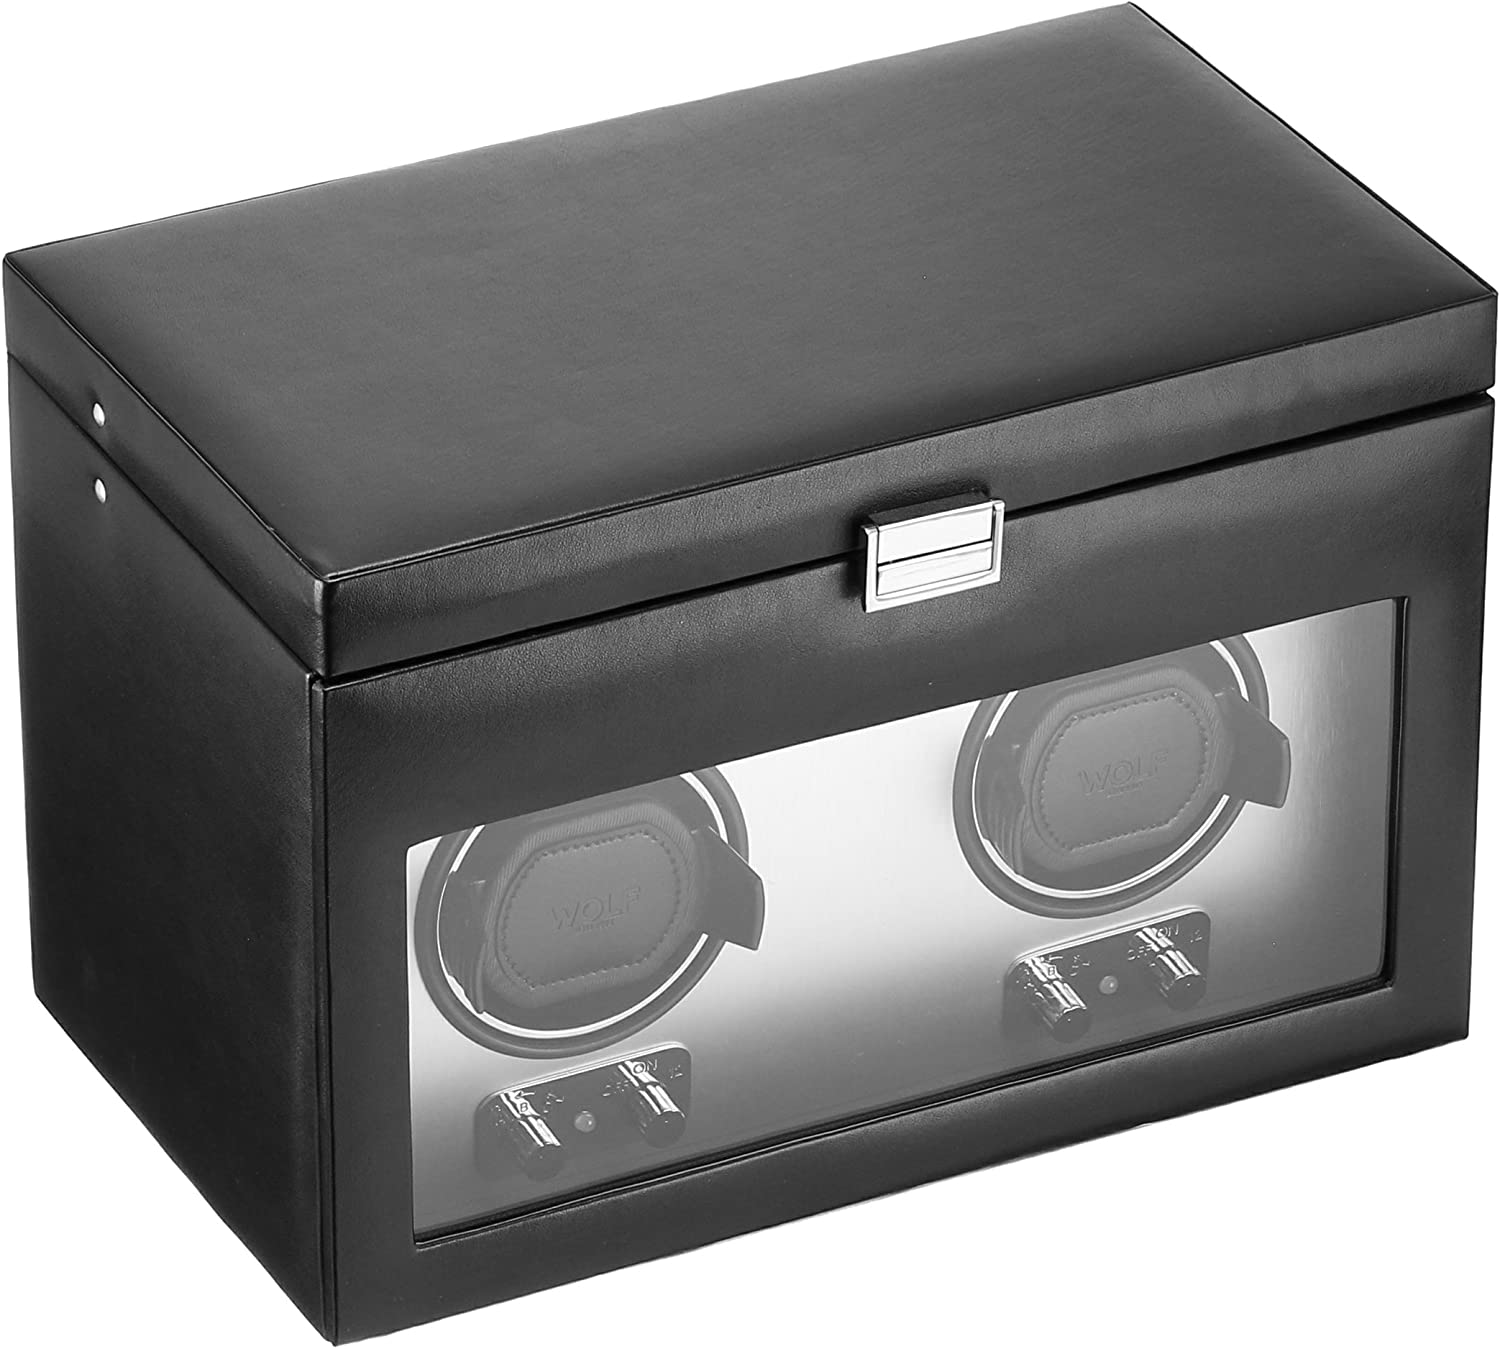 WOLF 270403 Heritage Double Max 83% OFF Watch Winder Cover Store and Storage with